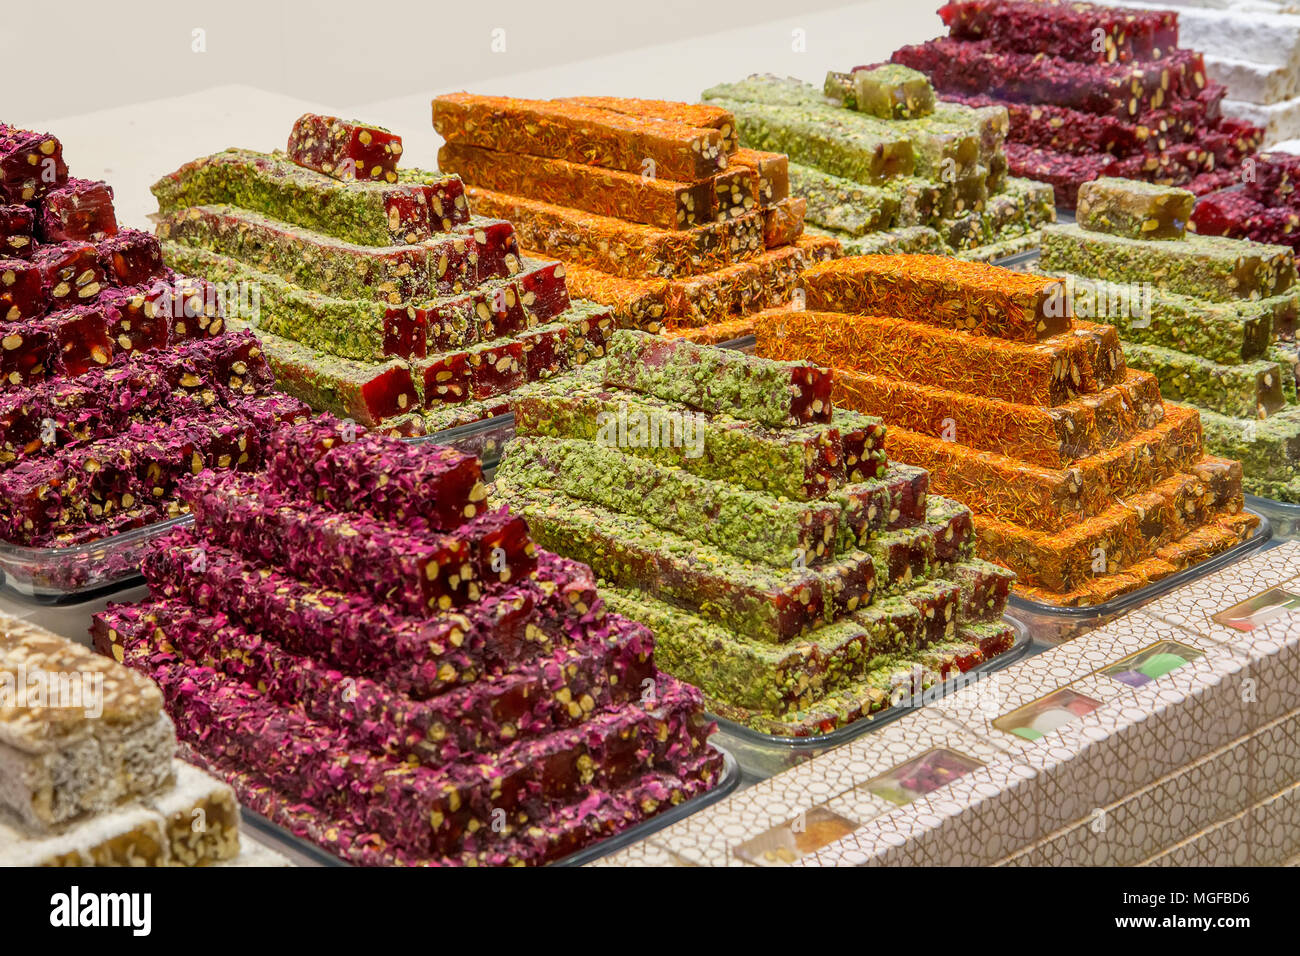 Turkish traditional sweets, rahat lukum in counter in the Grand Bazar market, Istanbul Stock Photo